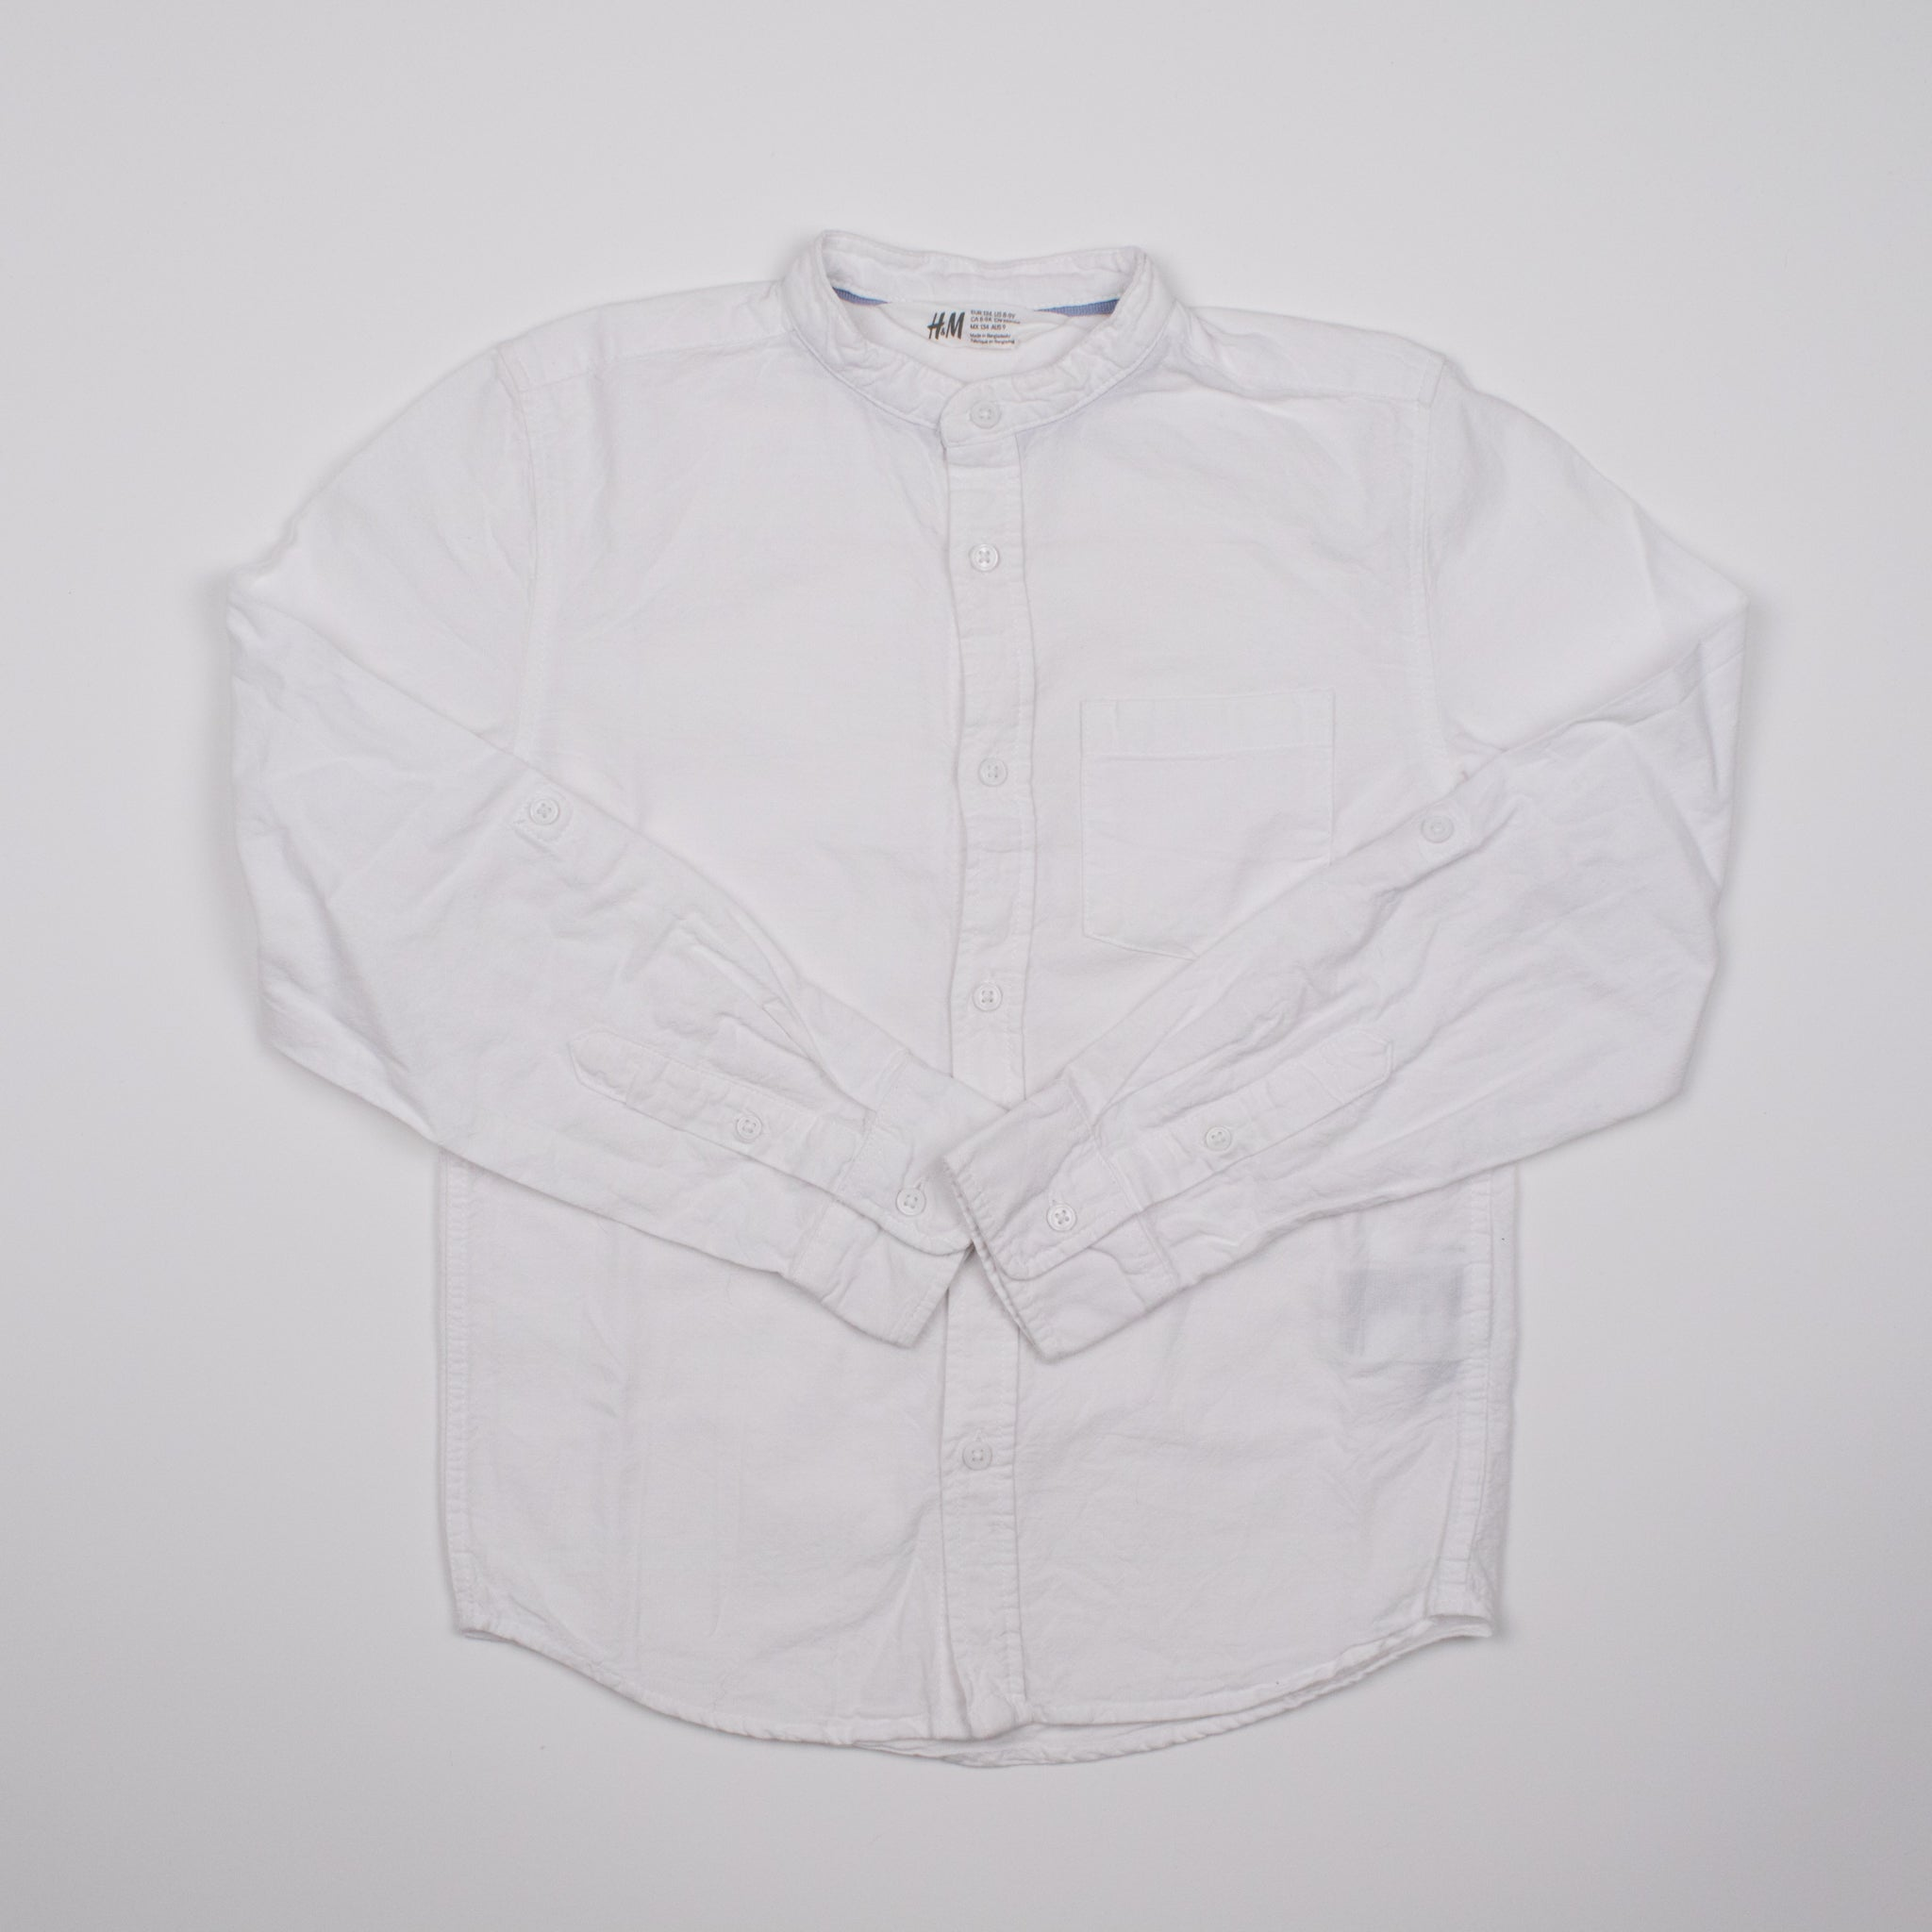 White Button-up Shirt 8-9Y